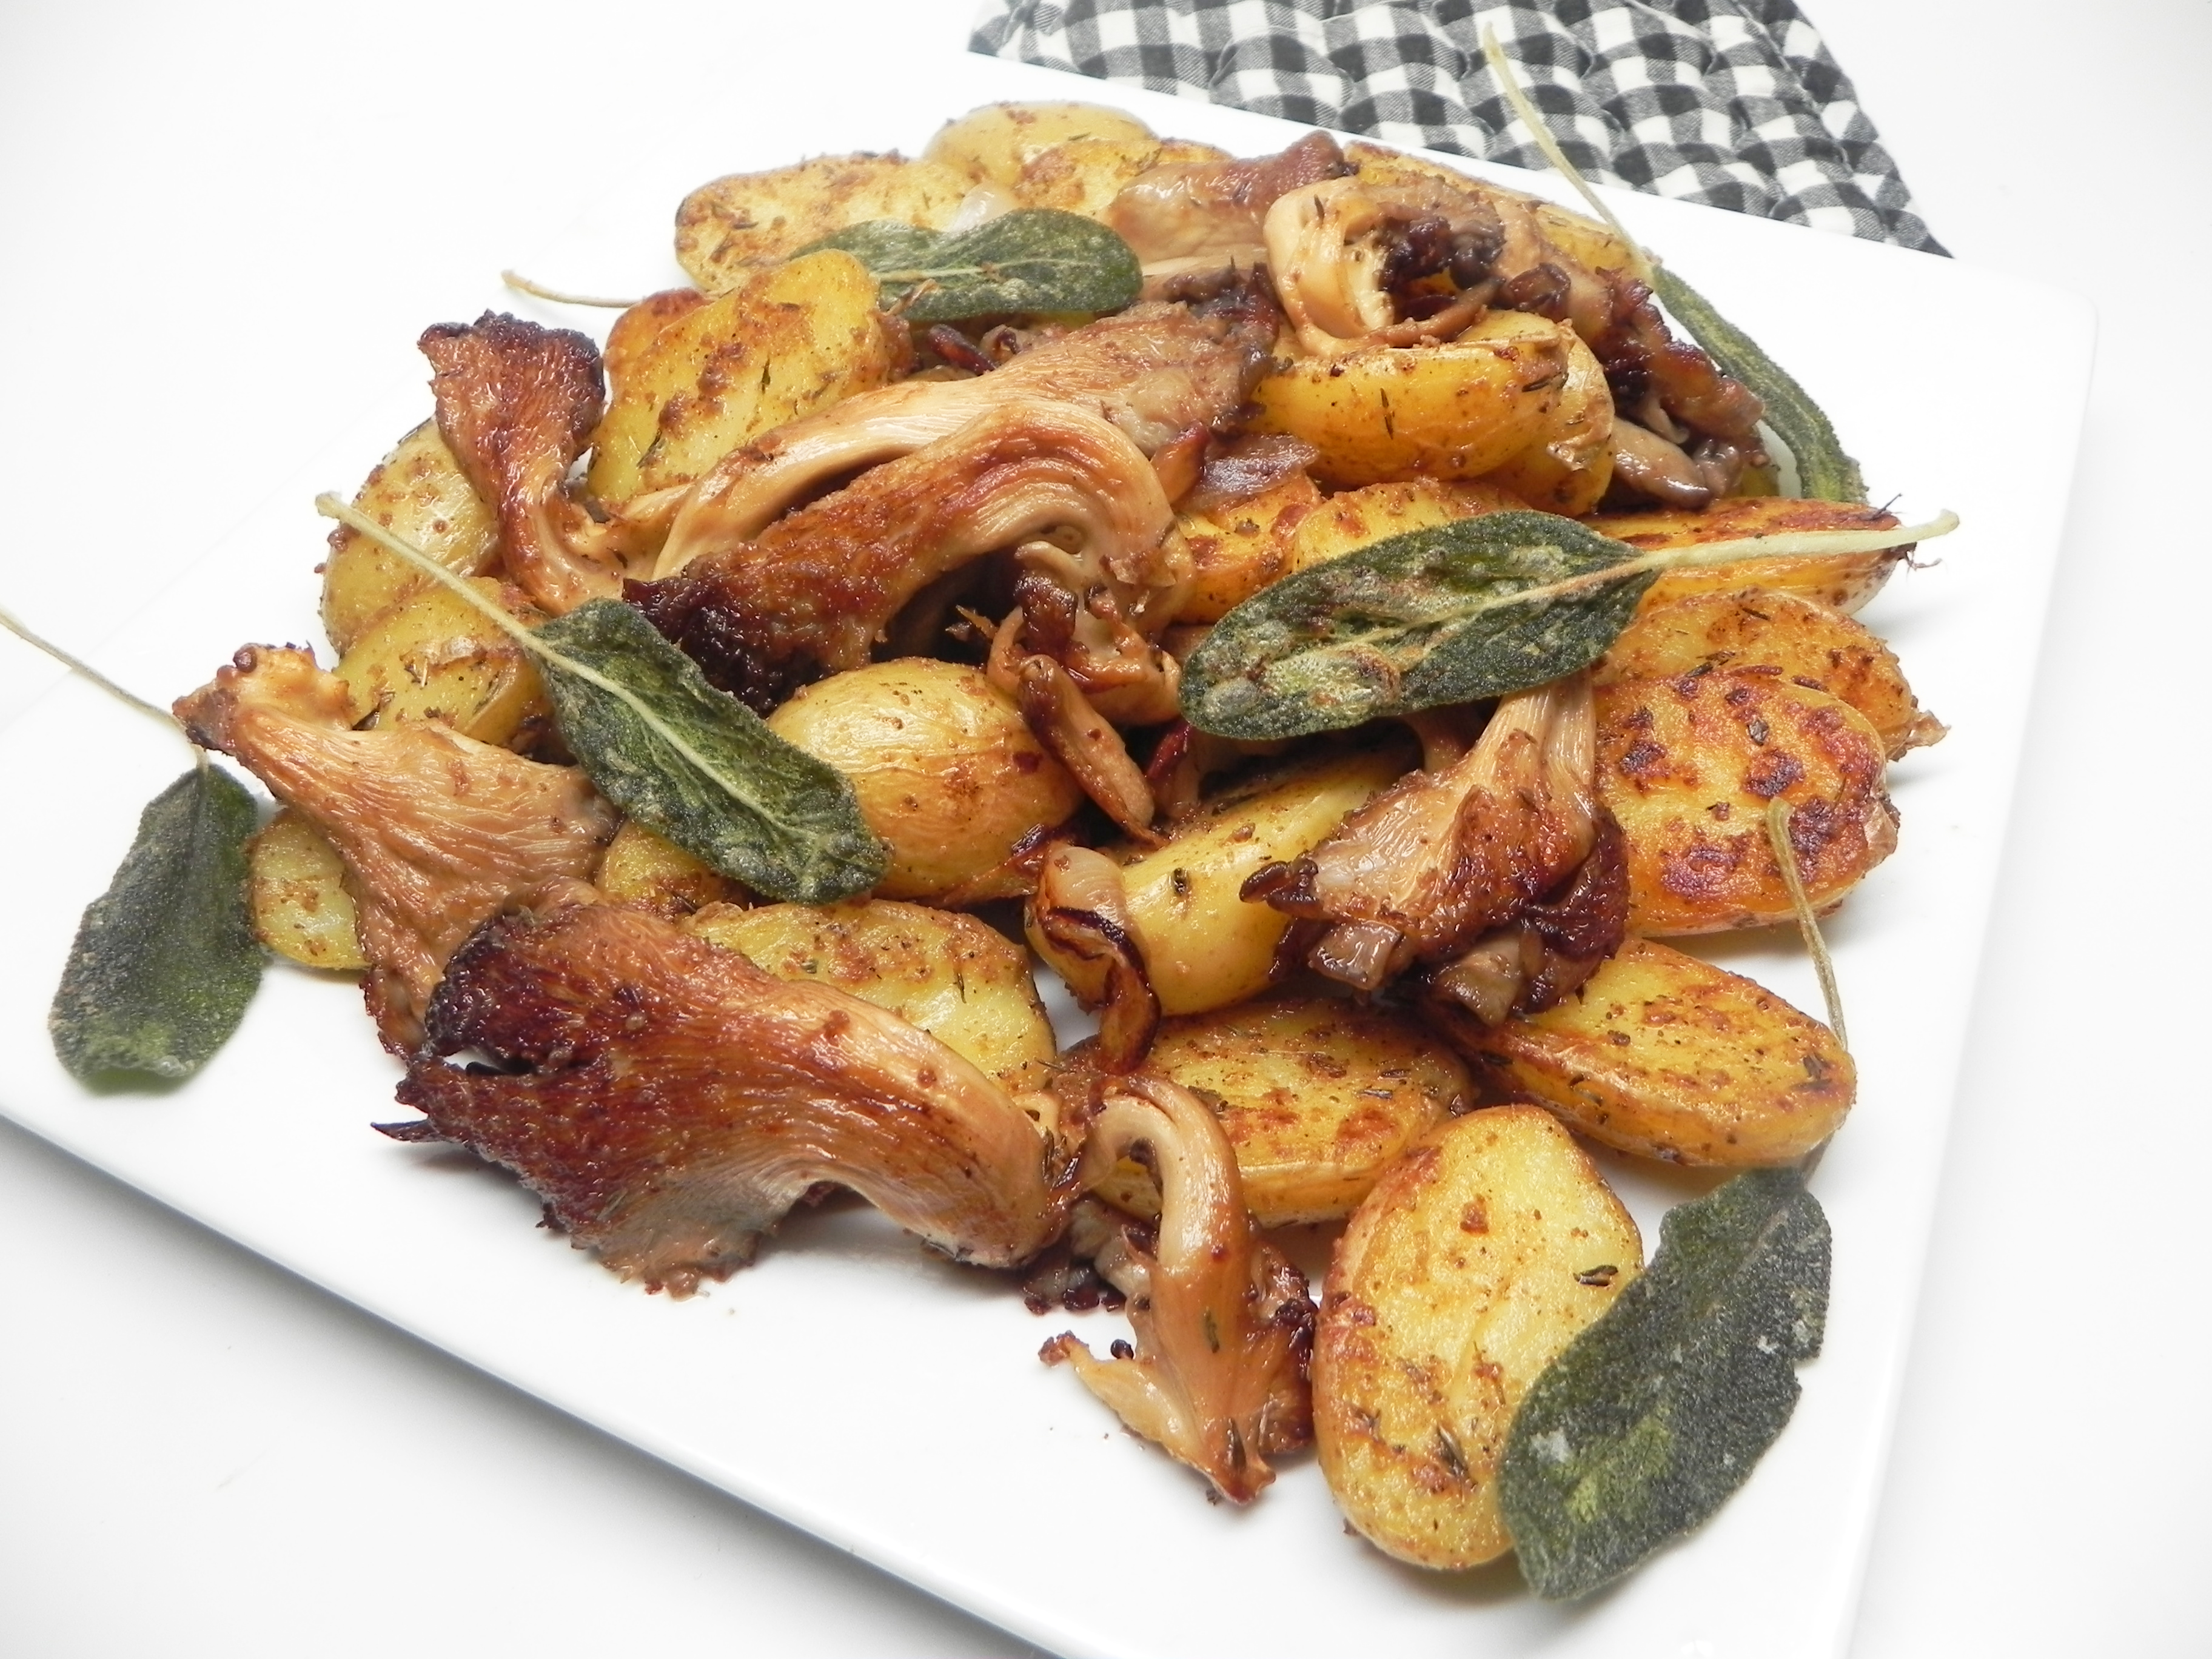 Classy Chanterelle Mushrooms and Potatoes